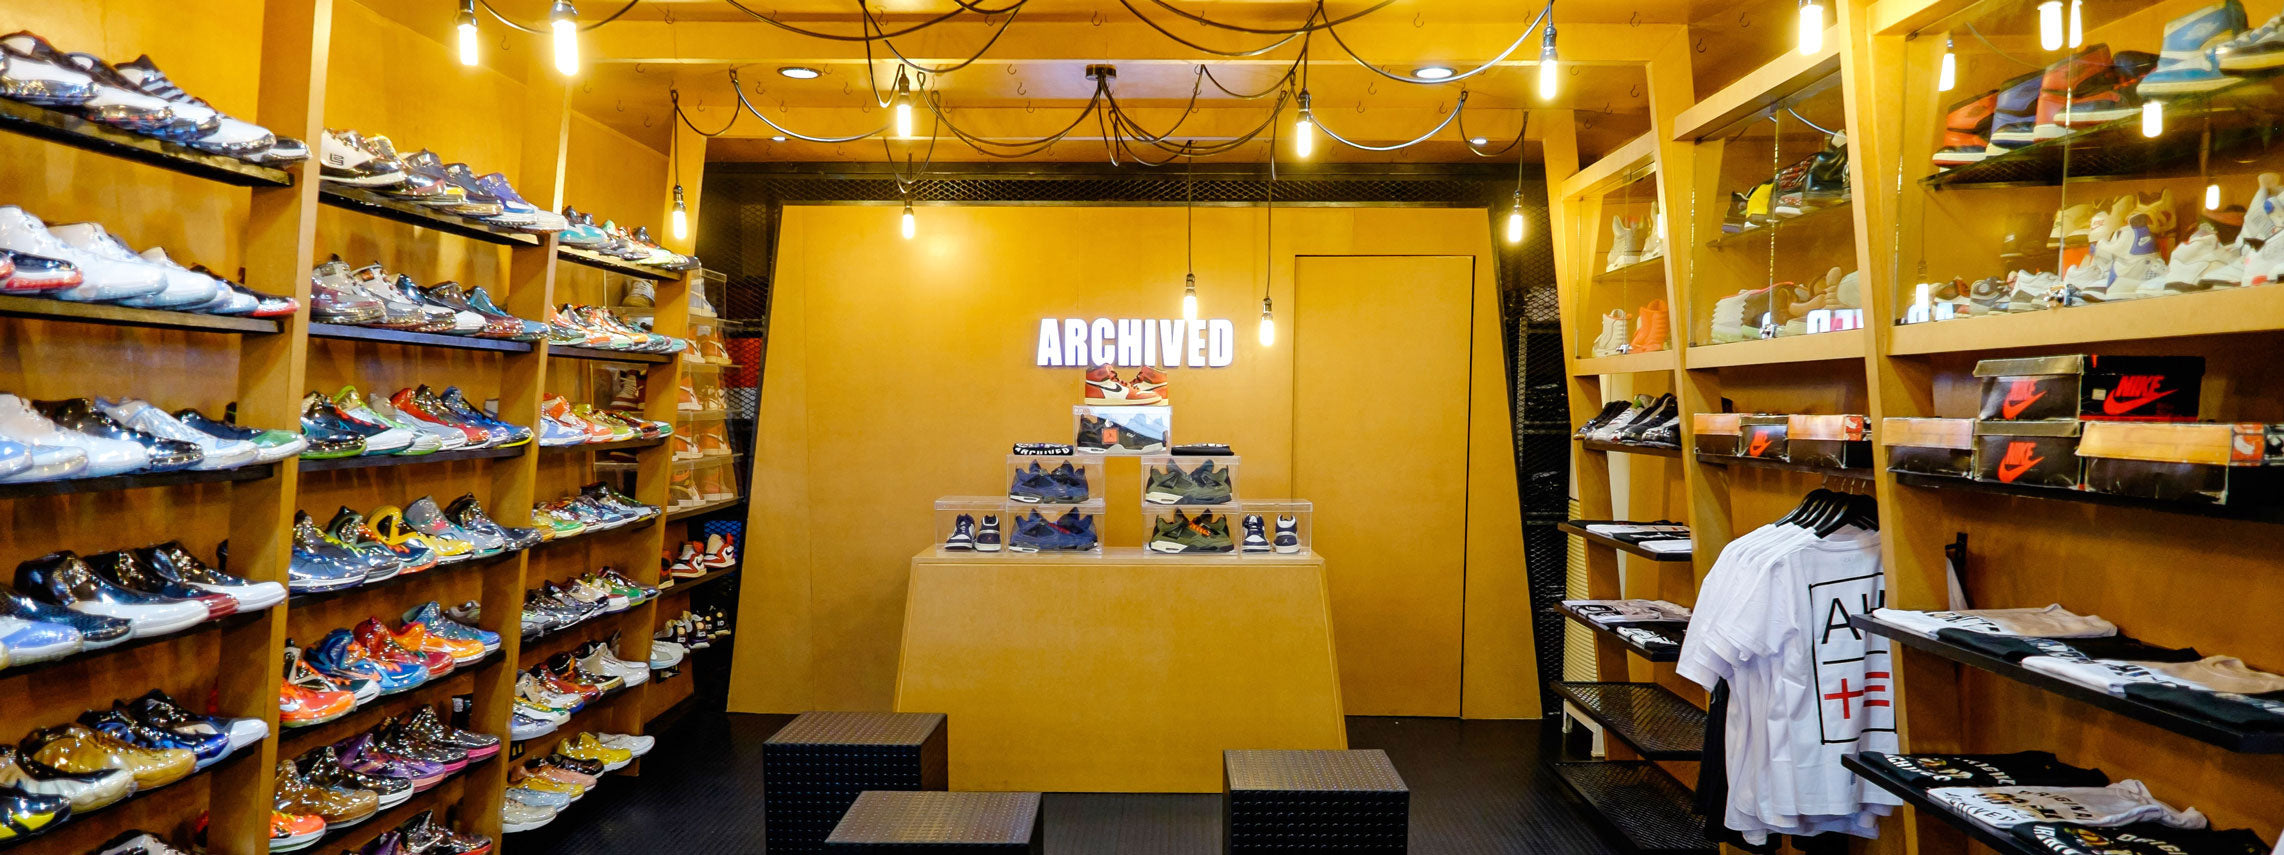 The Archived store based in Manila f31494056